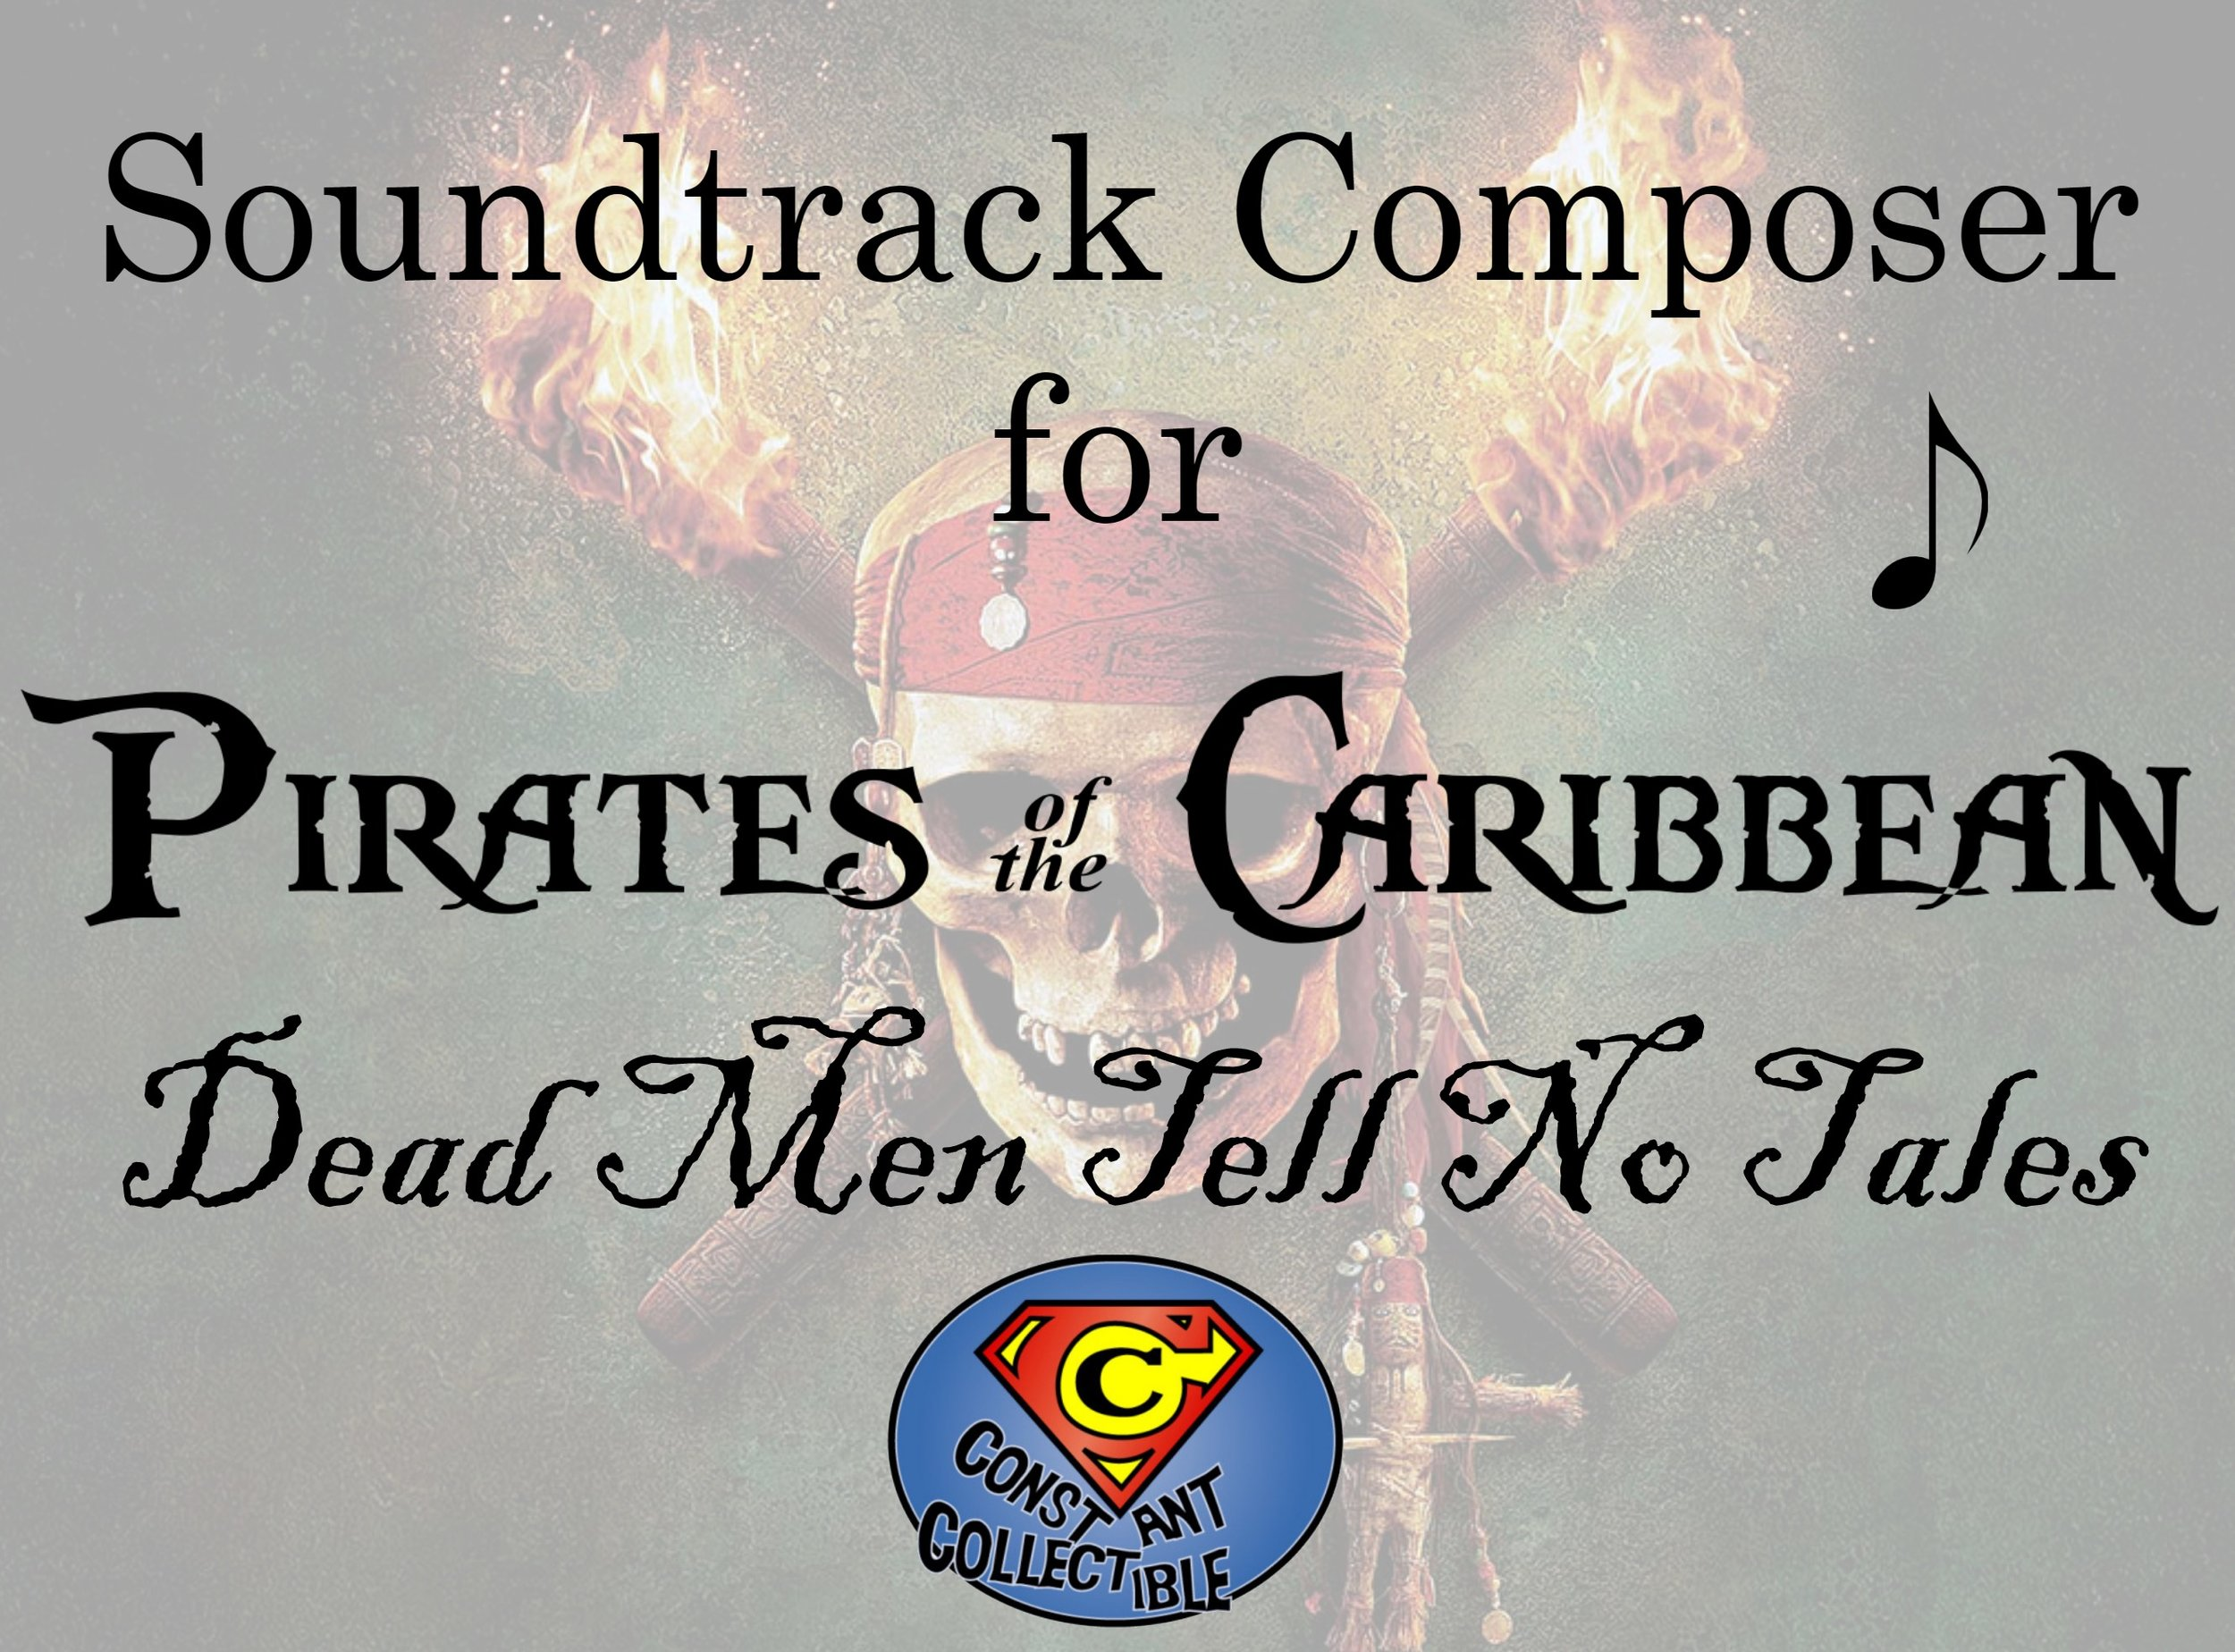 Soundtrack Composer for Pirates of the Caribbean Dead Men Tell No Tales - Constant Collectible